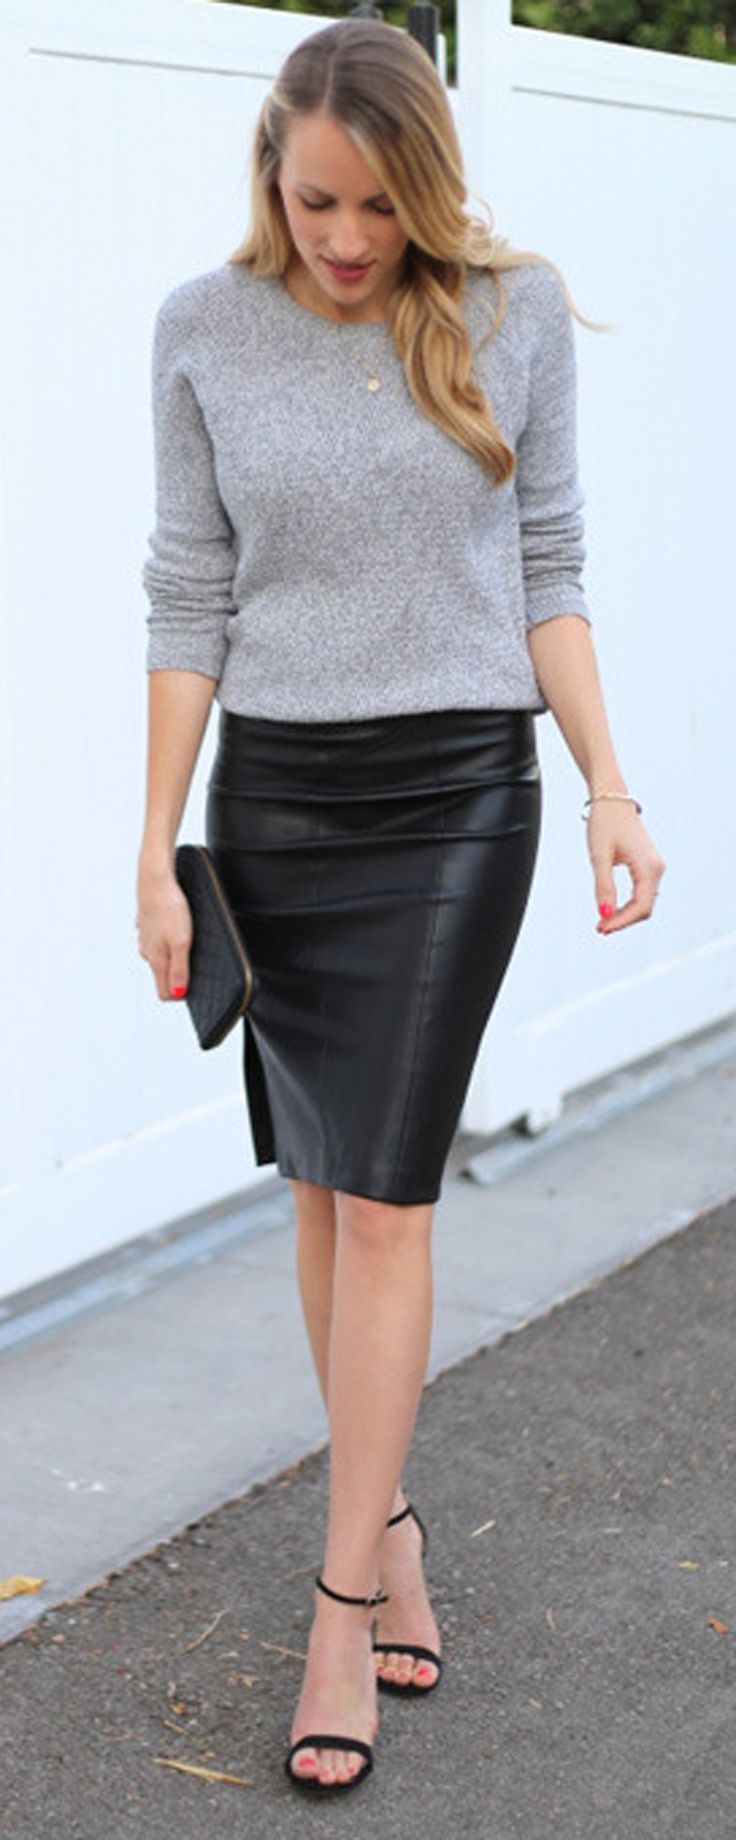 Cheap ! Cheap ! Cheap ! Black Bodycon Split Leather Skirt cheap but good quality ! Pear it with any stylish items! More cheap skirt at M.SHEIN.com! 40% Off Your 1st Order !